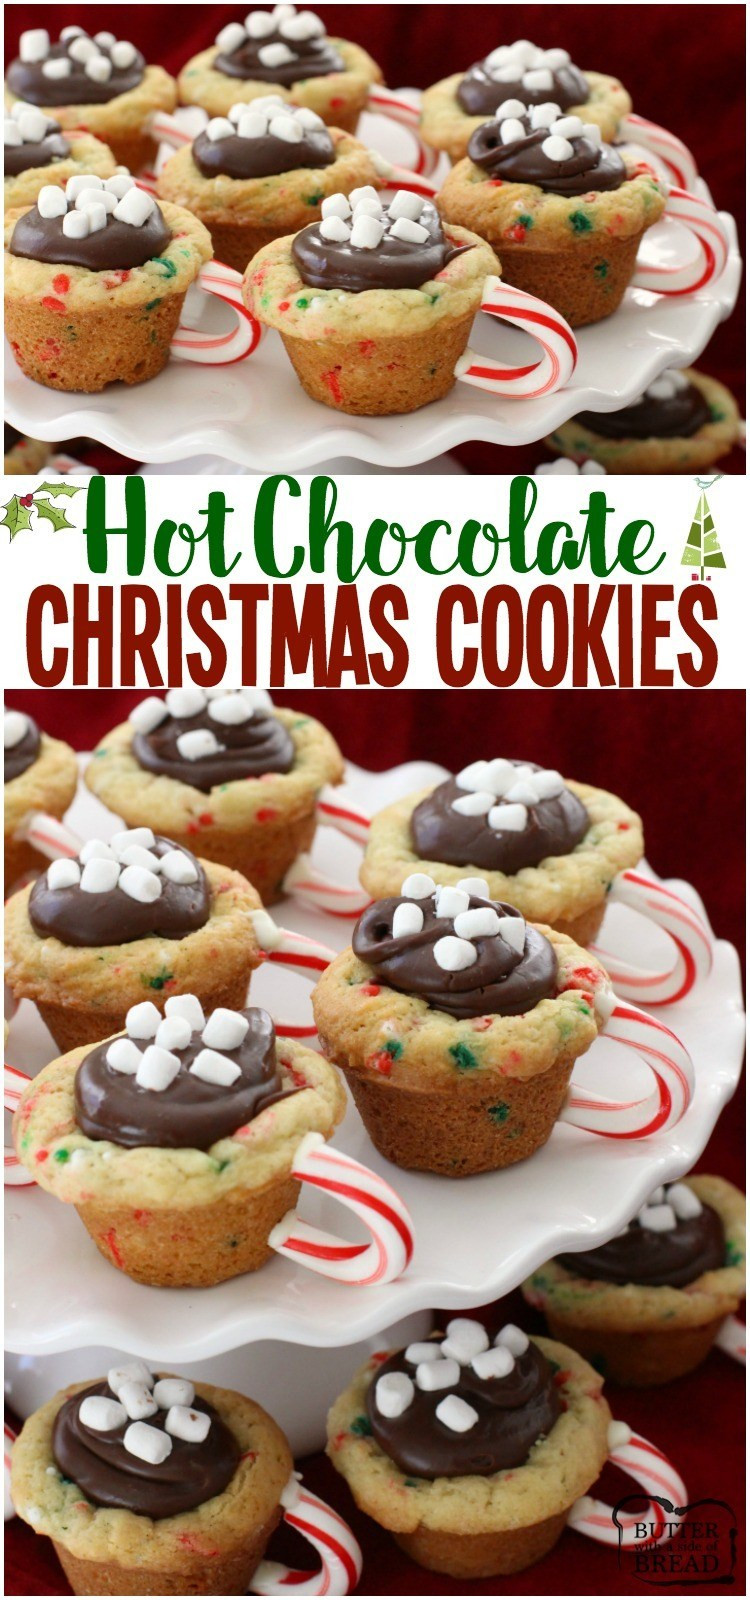 Christmas Cookies And Candy  HOT CHOCOLATE CHRISTMAS COOKIES Butter with a Side of Bread